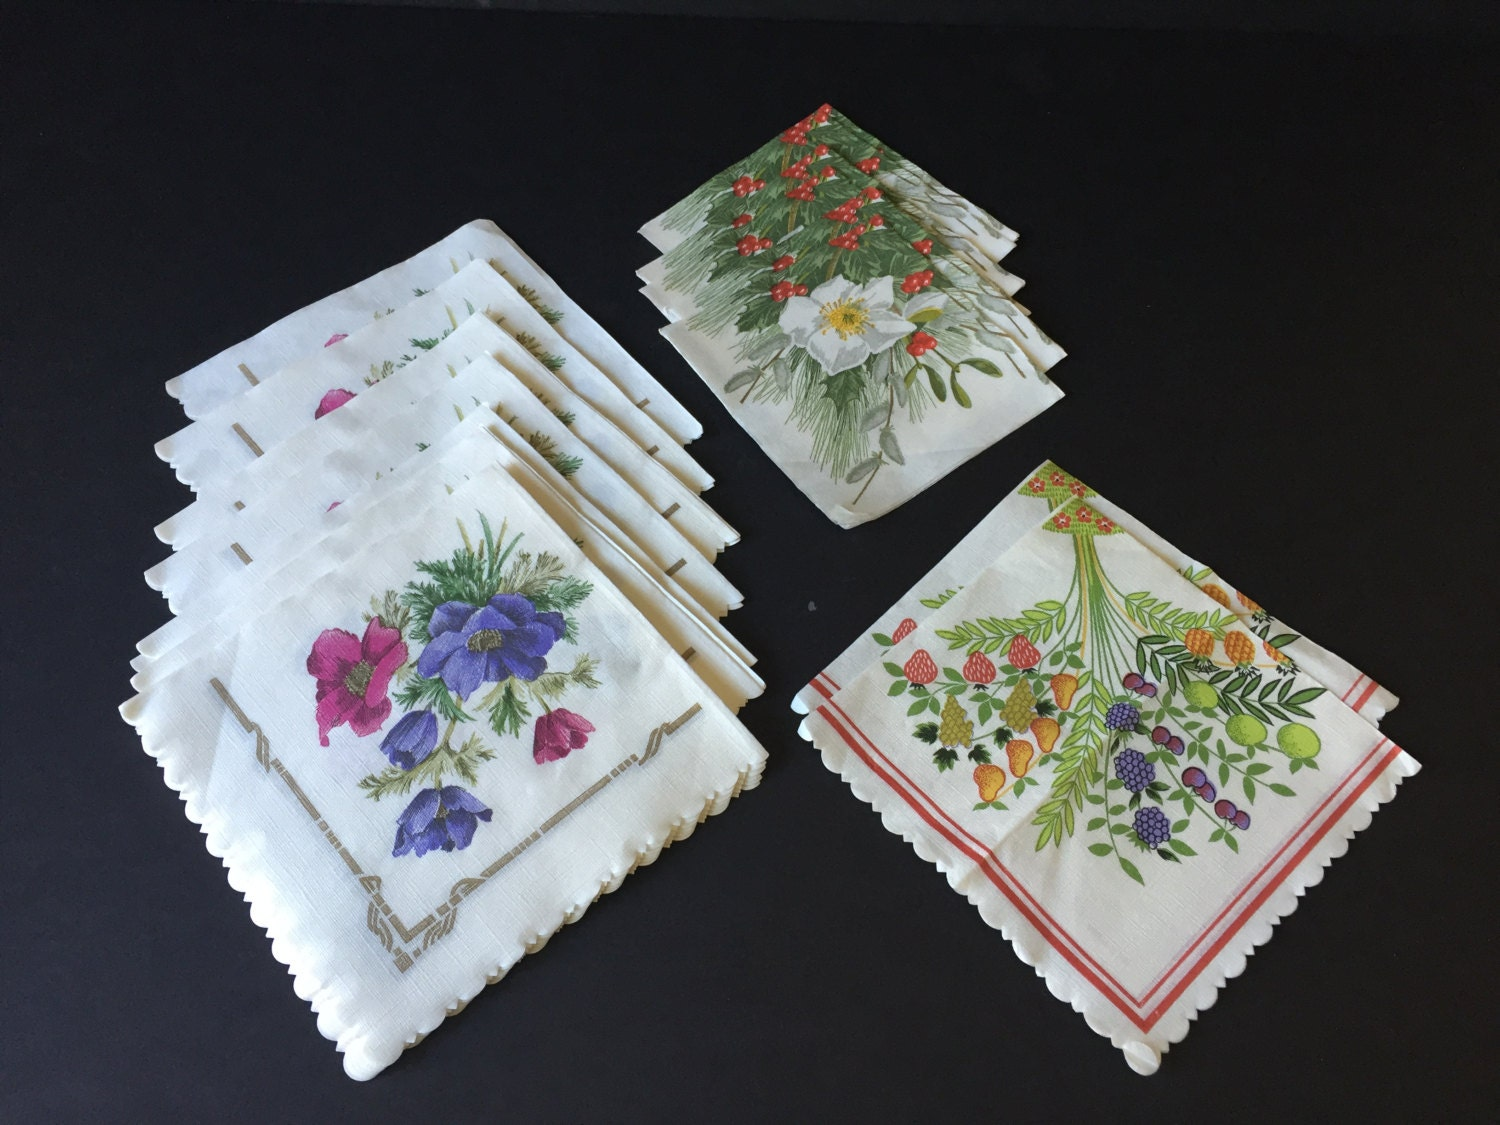 floral paper napkins Carole shiber's napkins are a generous 20, they machine wash and dry, and need no ironing add our hand-painted leafy napkin ring that will create a rose purchase them in hand-picked bouquets, perfect as a gift of flowers – no watering necessary.